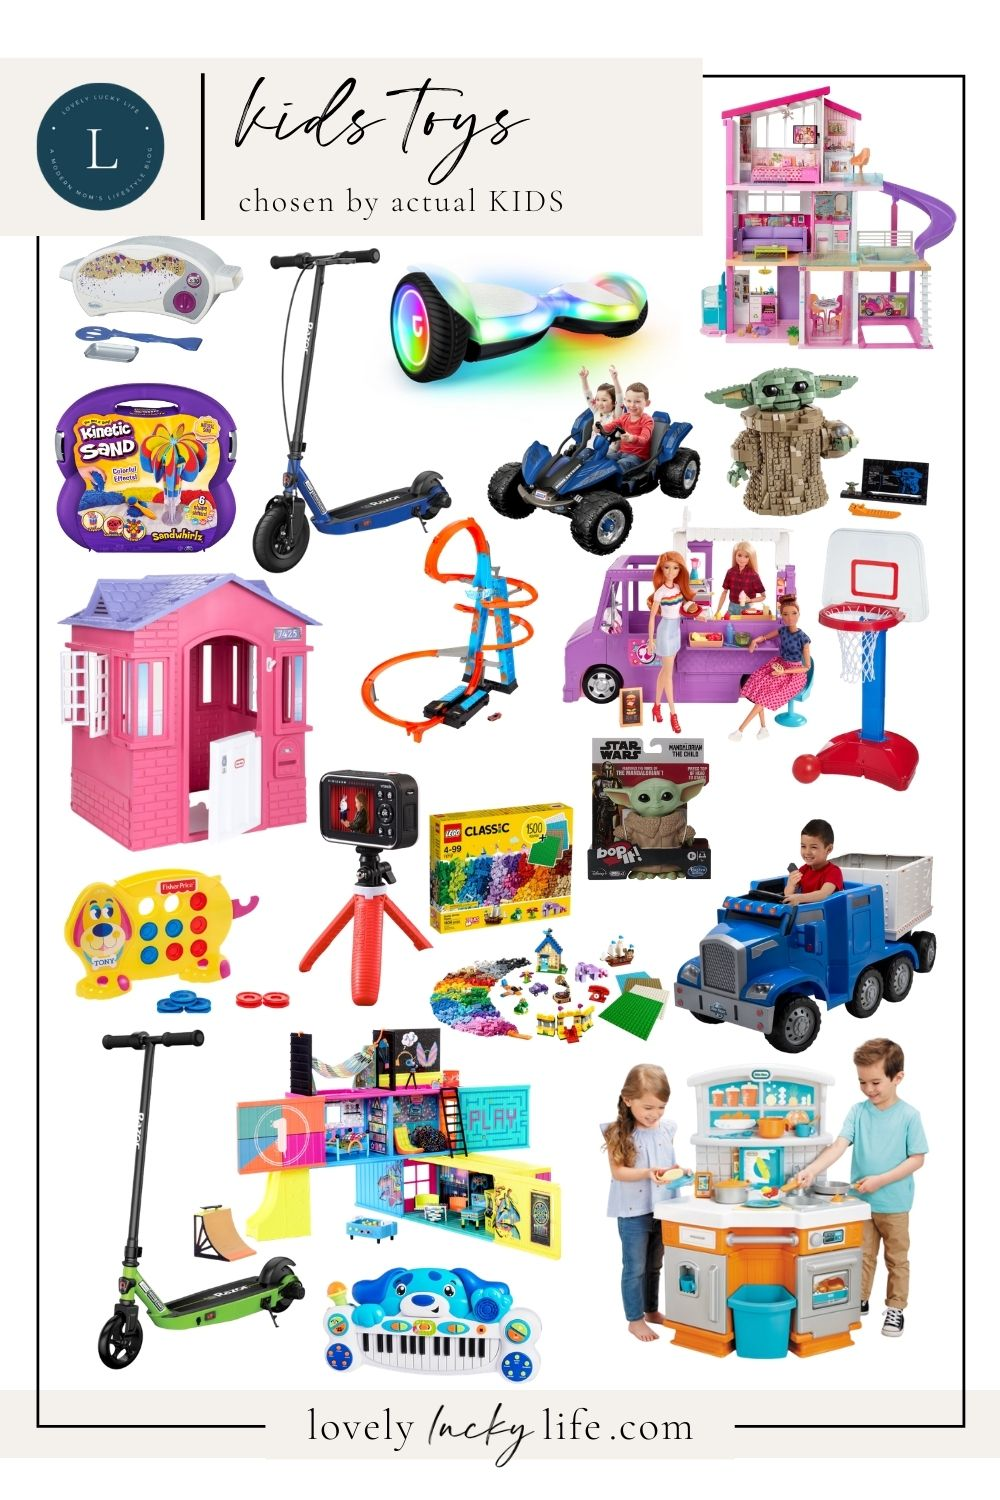 2020 Kids Toys chosen by actual kids